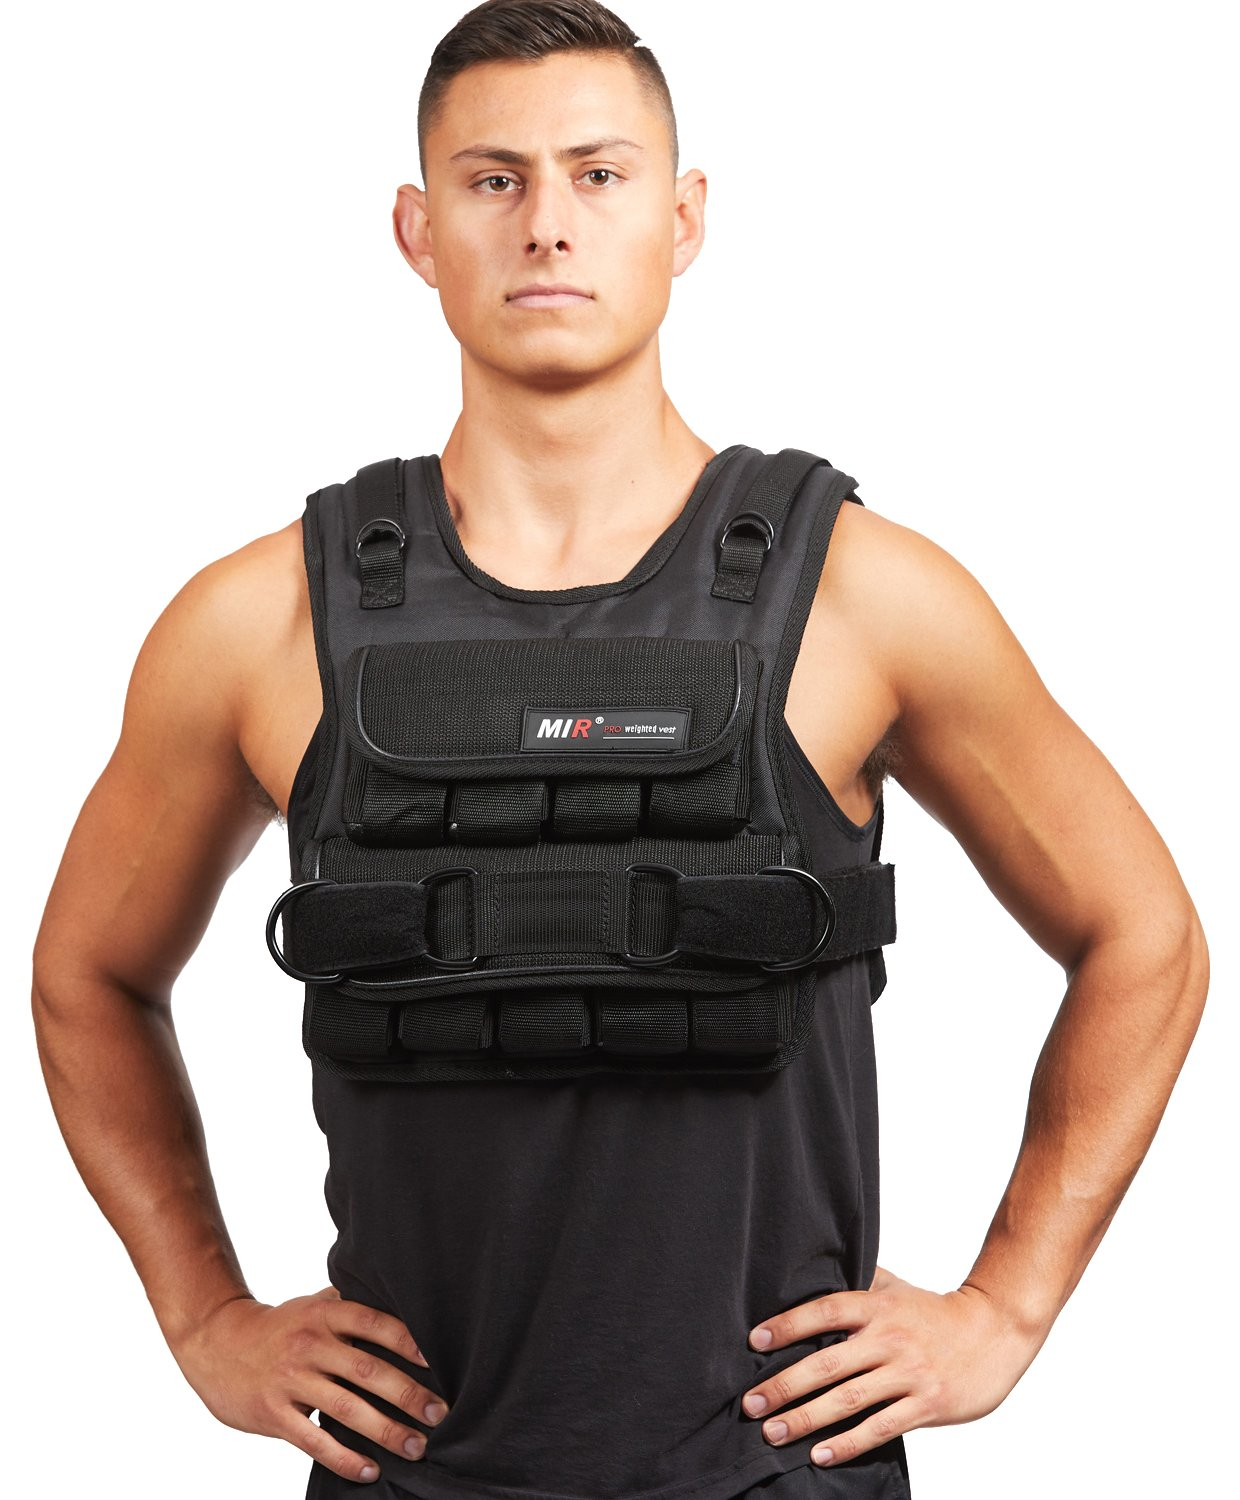 Mir Adjustable Weighted Vest, 20 lb.